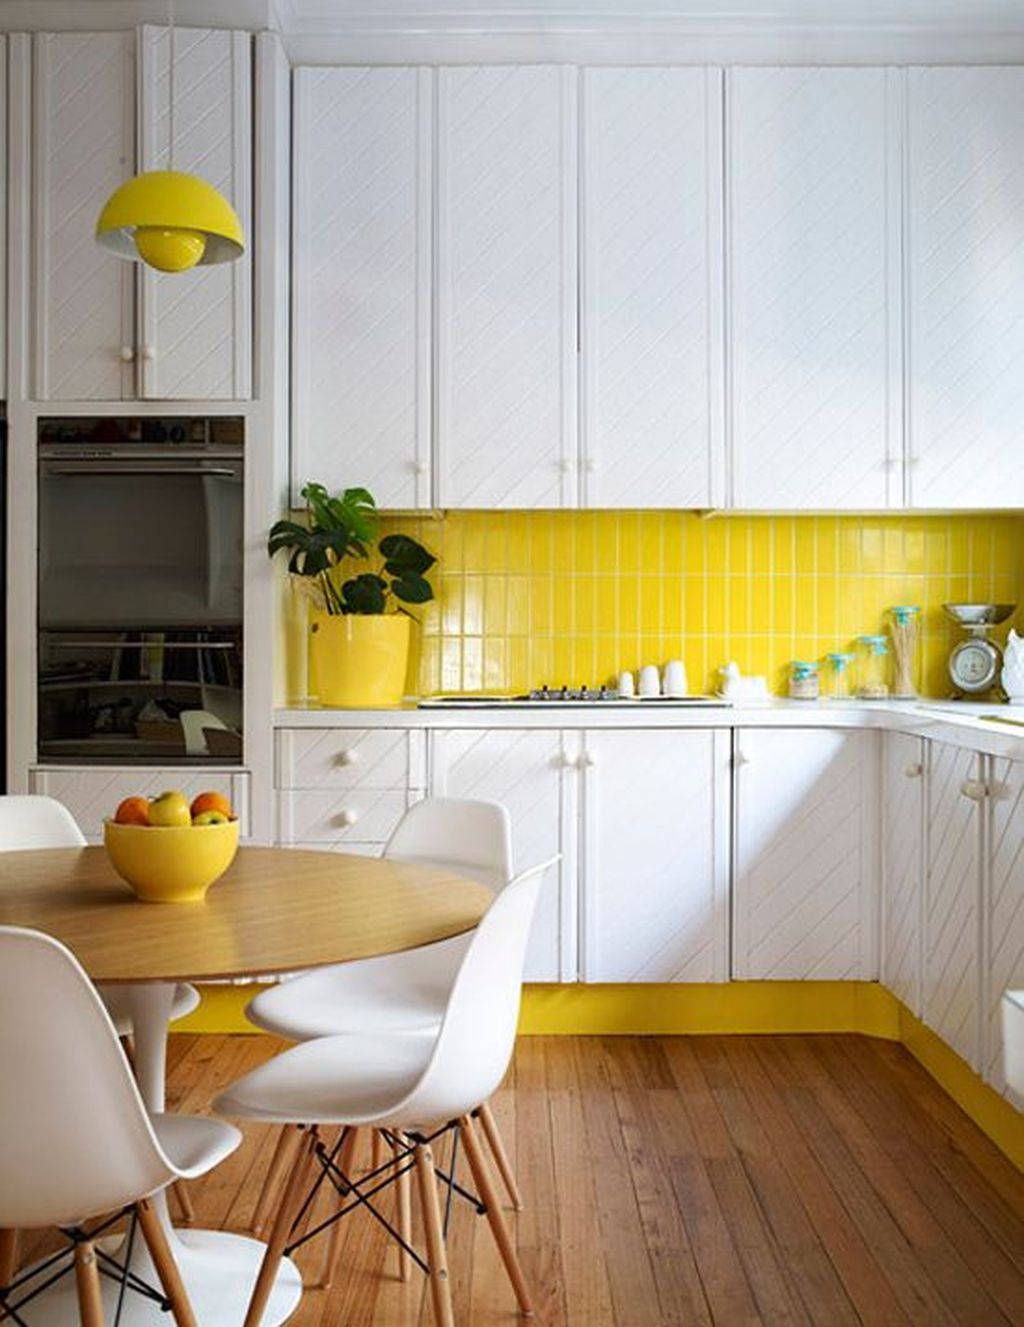 Charming Yellow Interior Design Ideas Best For Summer 23